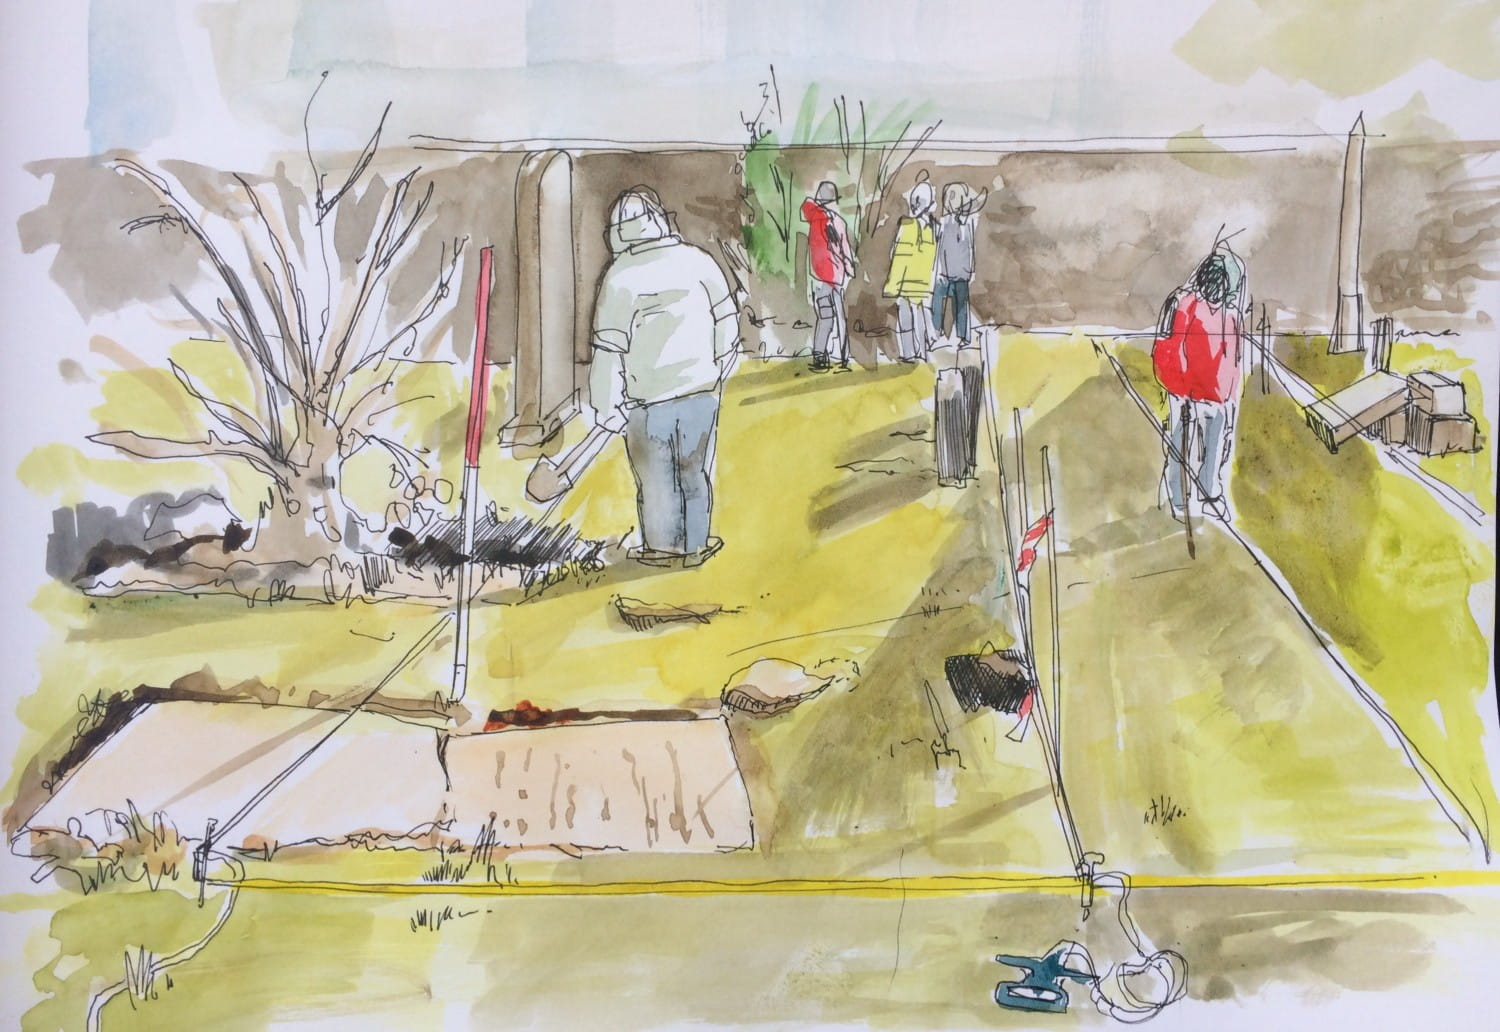 Artist in residence Fiona Fleming has been documenting the dig